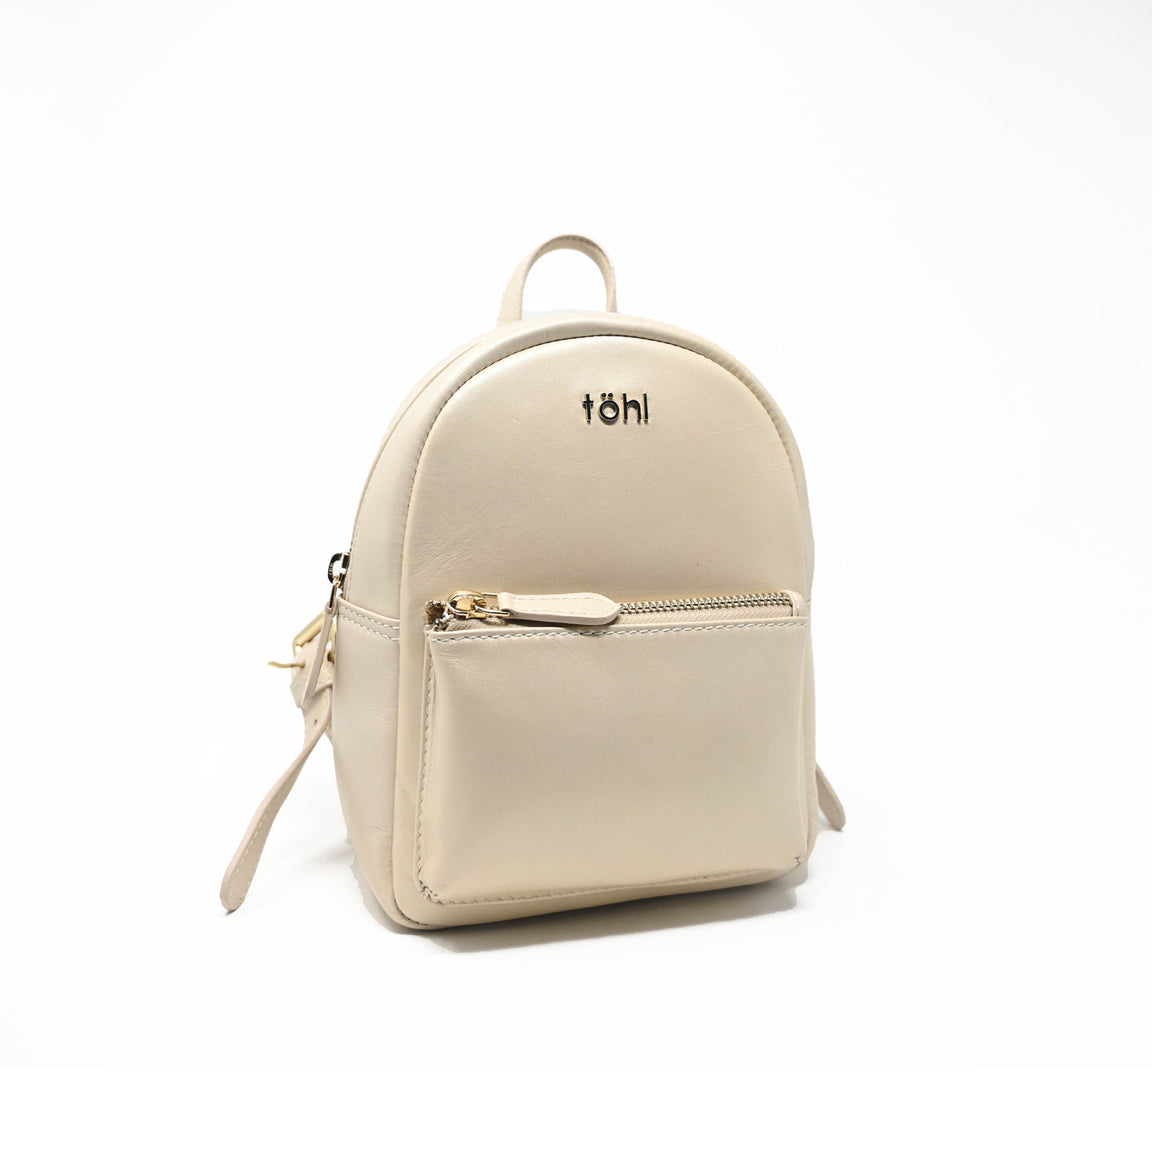 BP0017 - TOHL NEVERN WOMEN'S BACKPACK - CHAMPAGNE PEARL